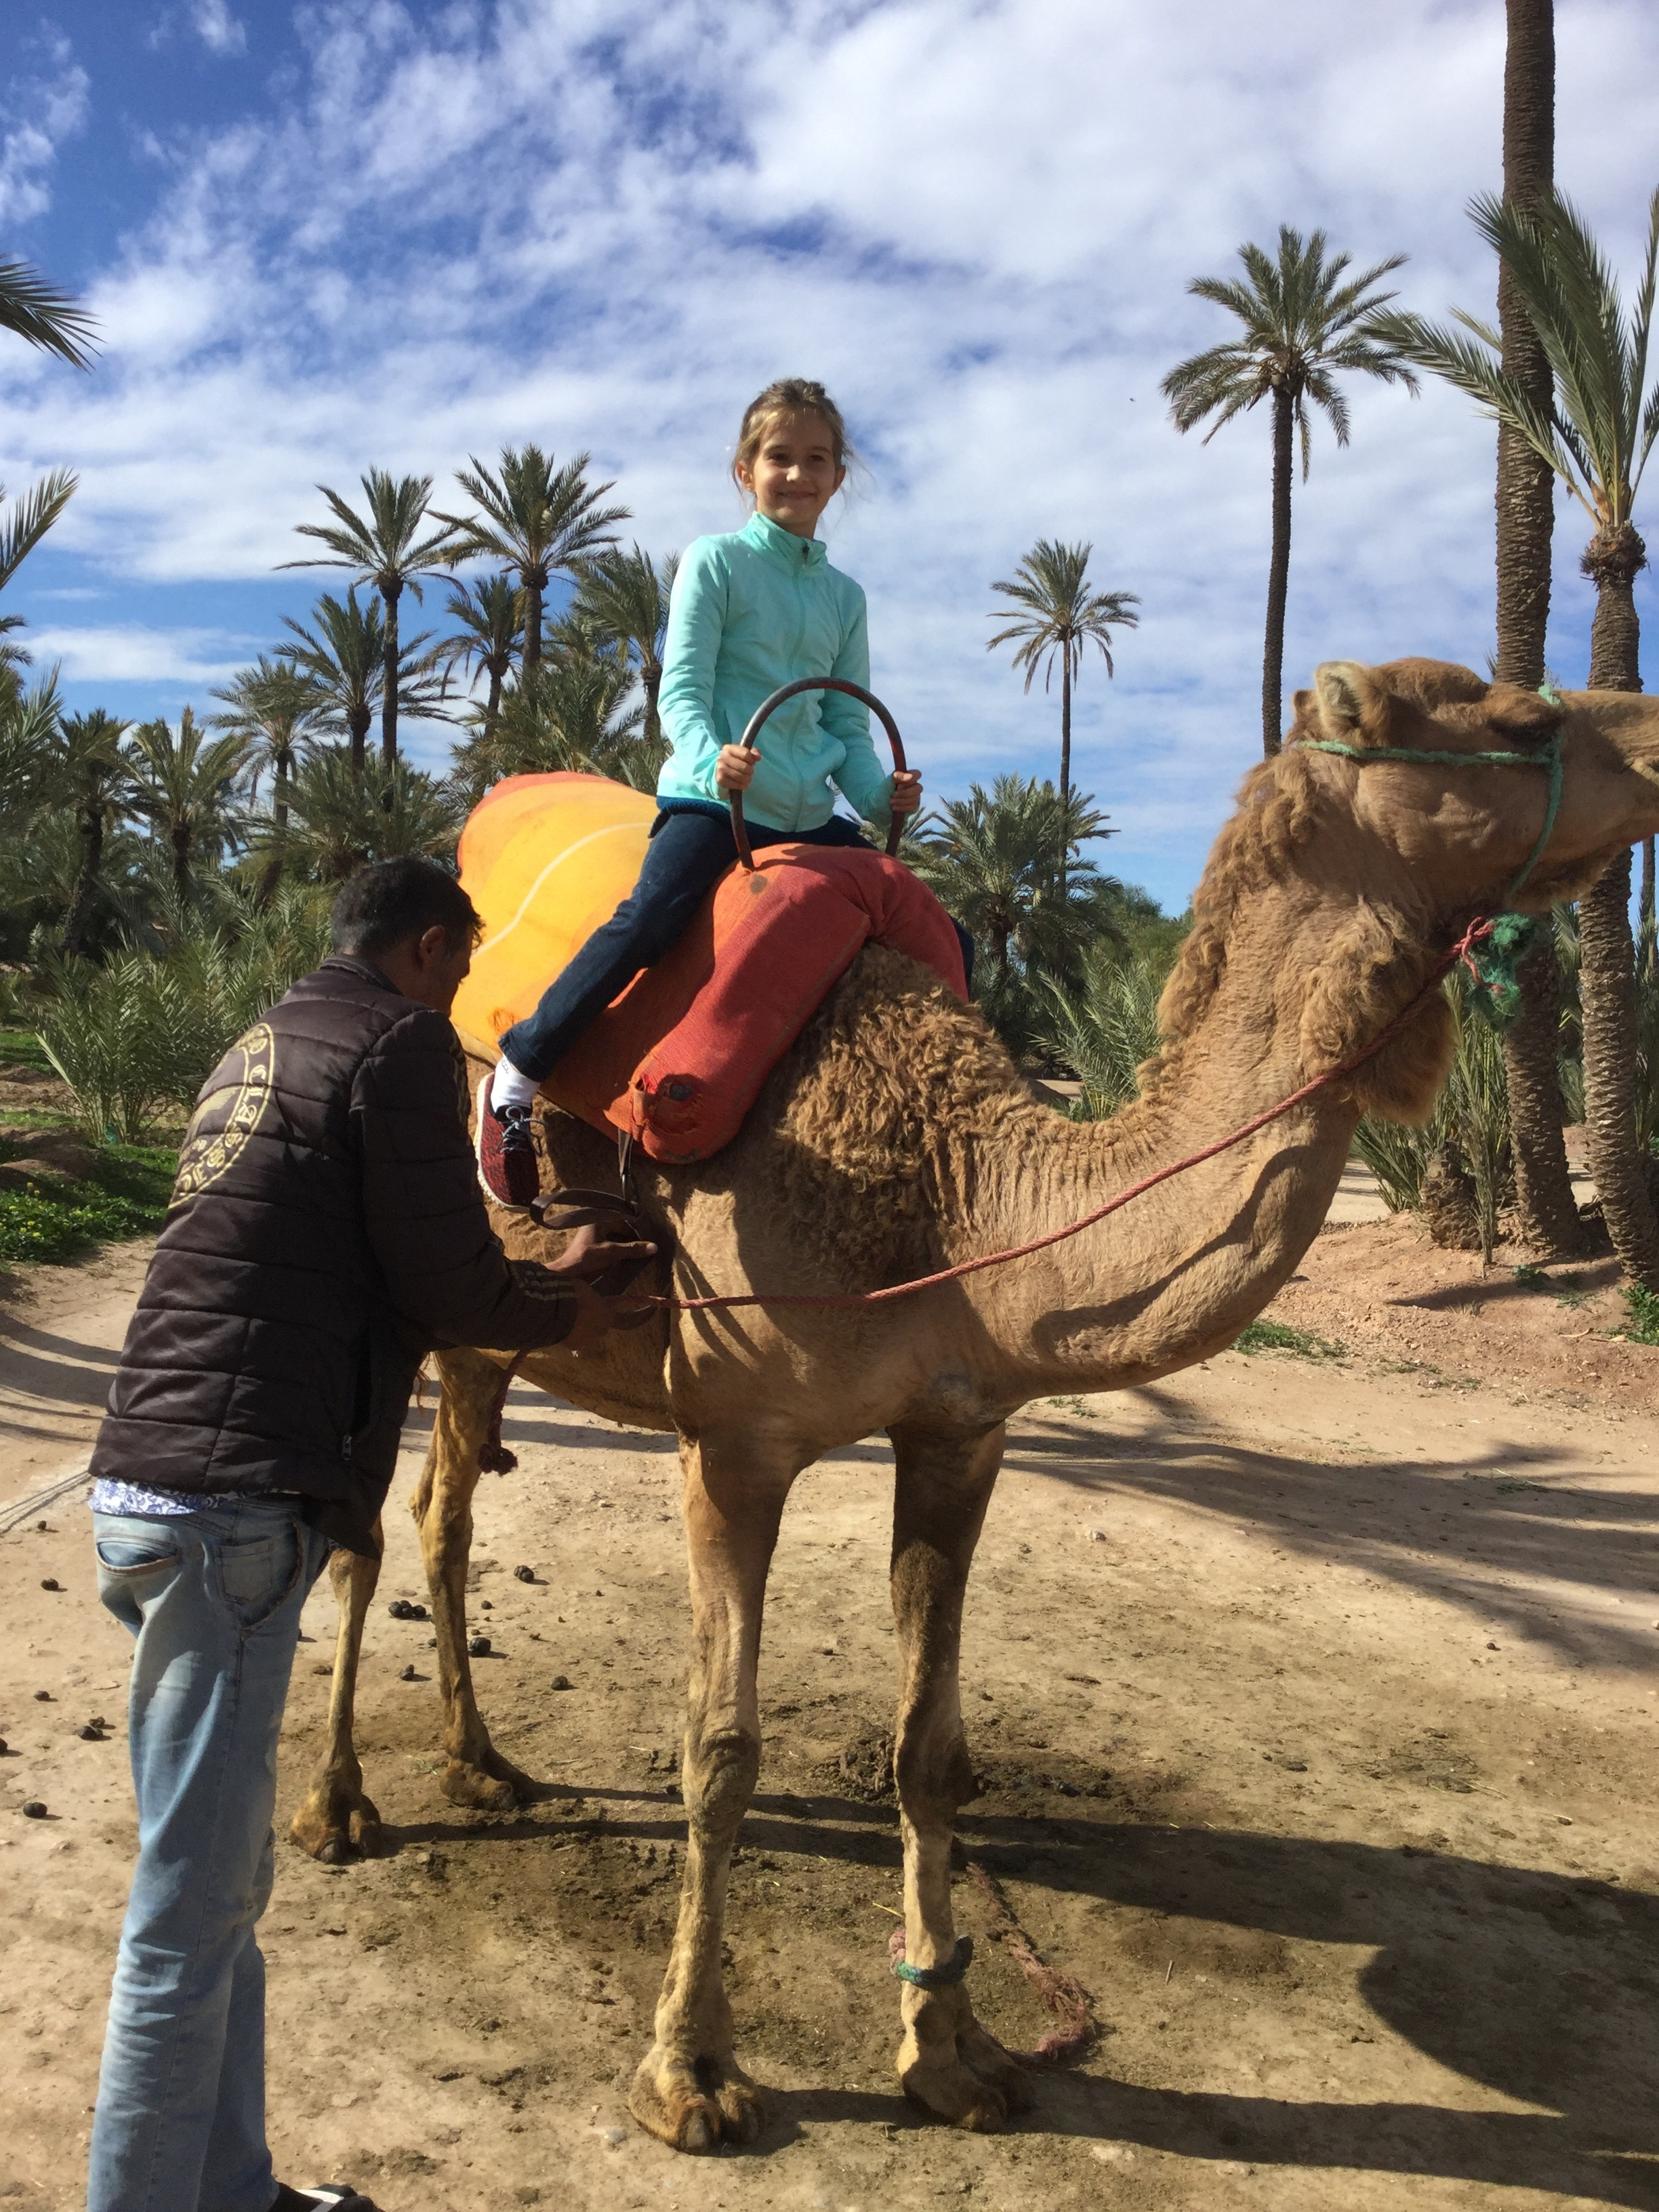 Lili getting on the camel. No fear at all - and they are high!